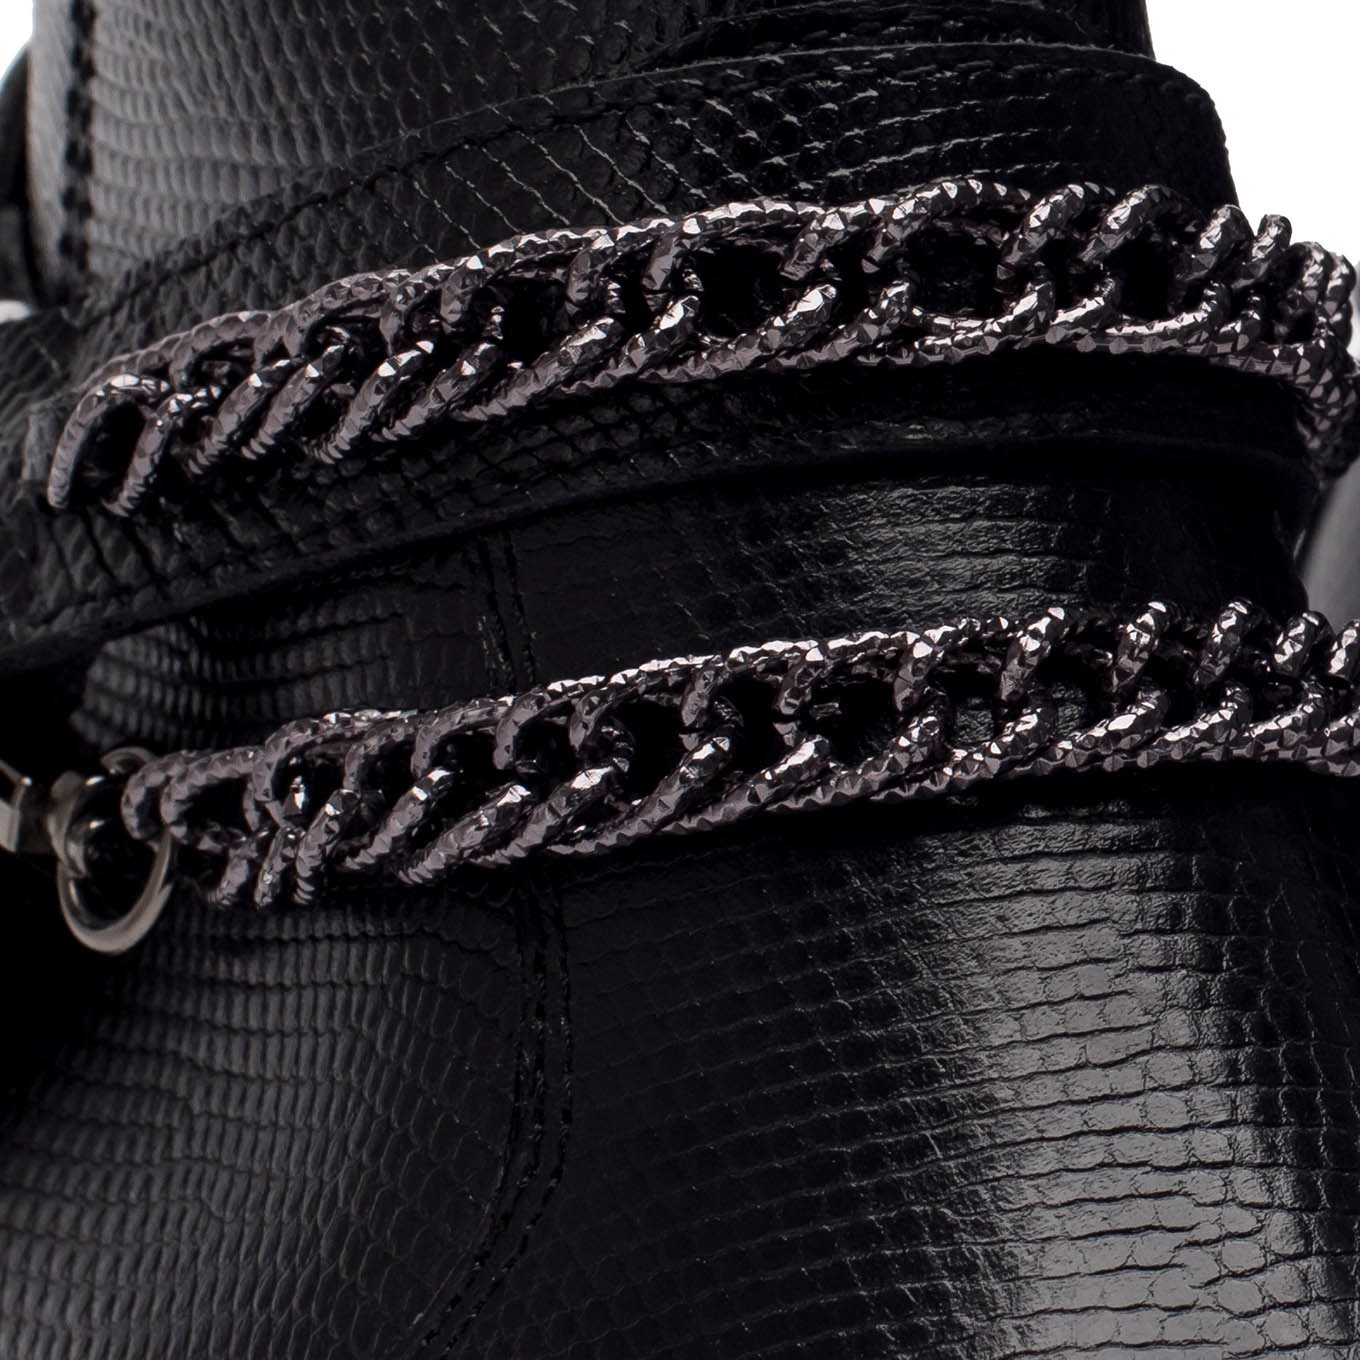 THE WILD WALK HARNESS – BLACK LIZARD (CHAIN)